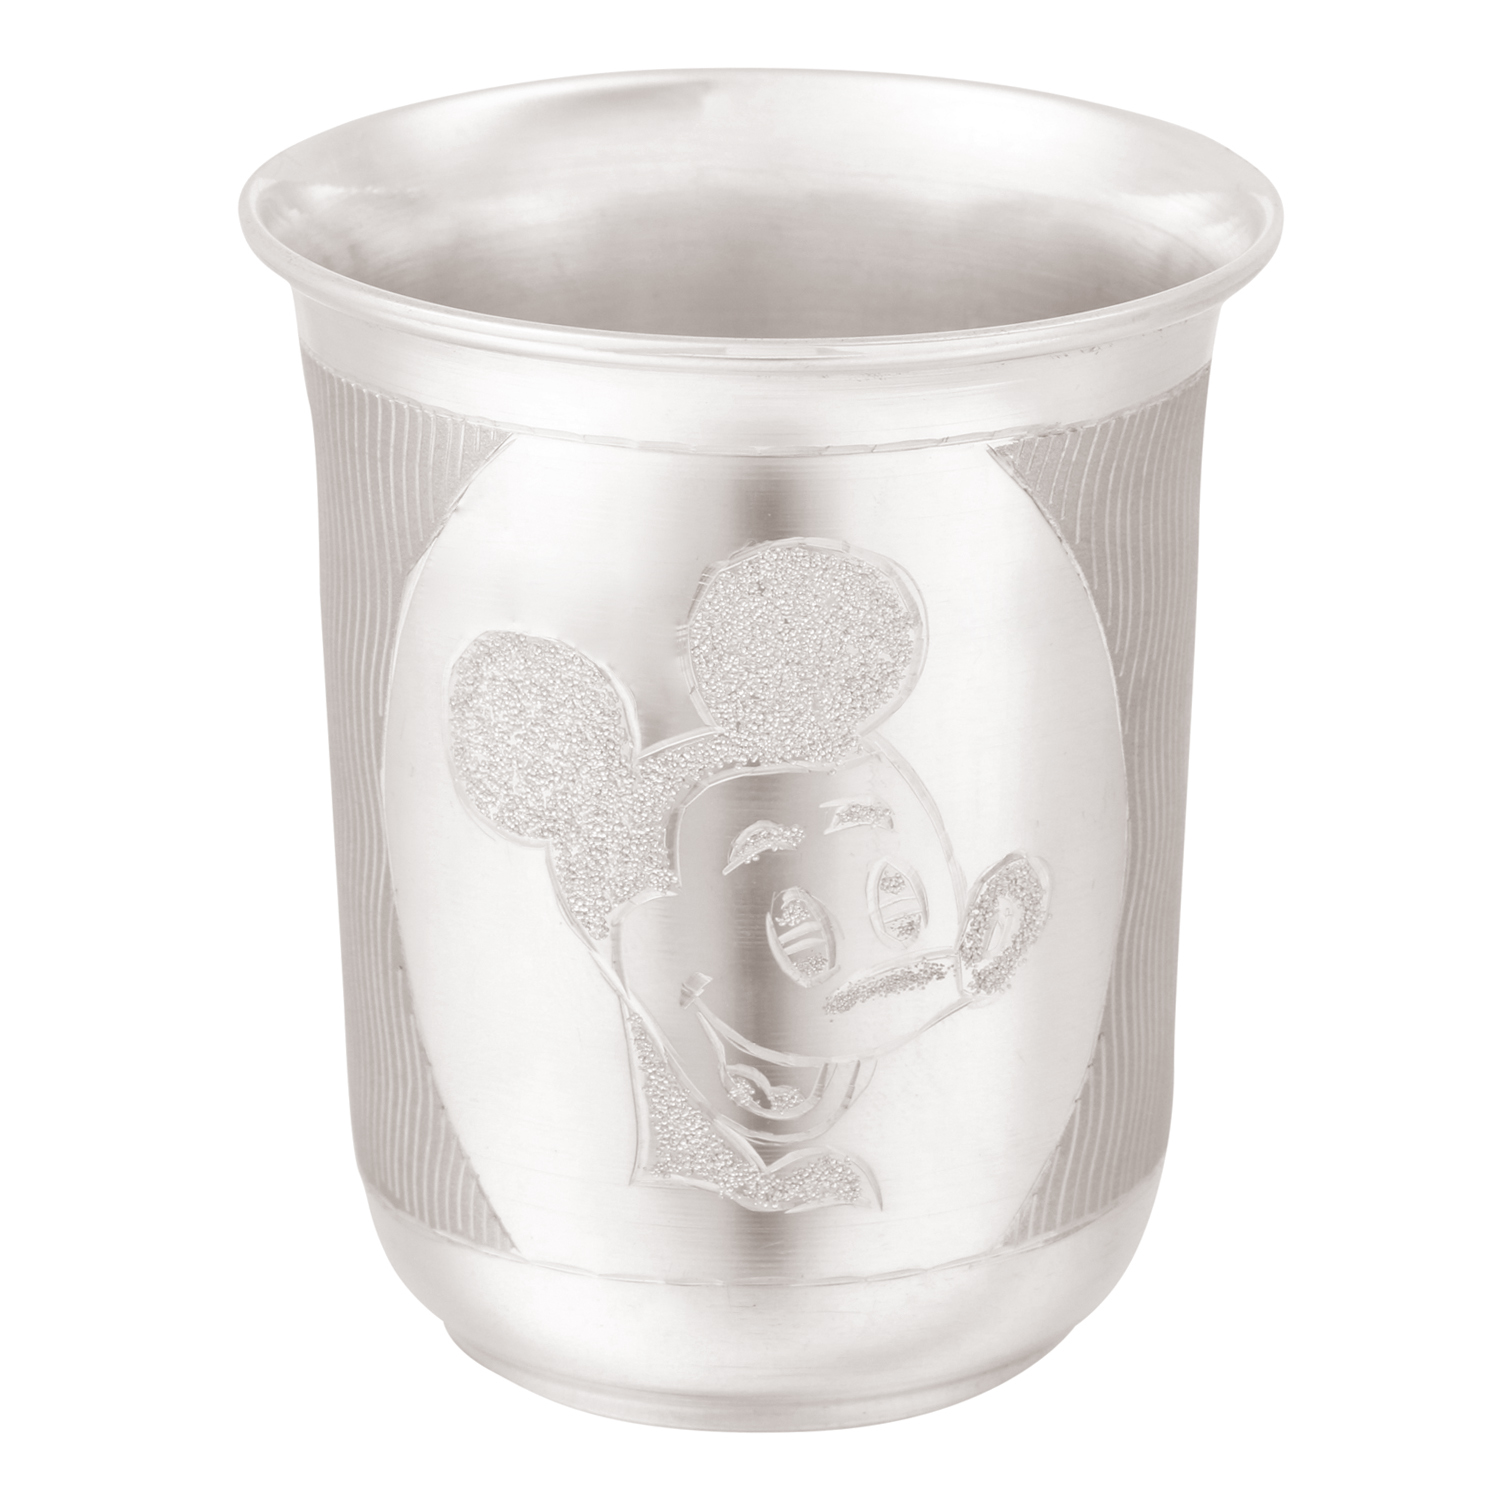 Osasbazaar Sterling Silver Baby Glass - Mickey Mouse Design - Main